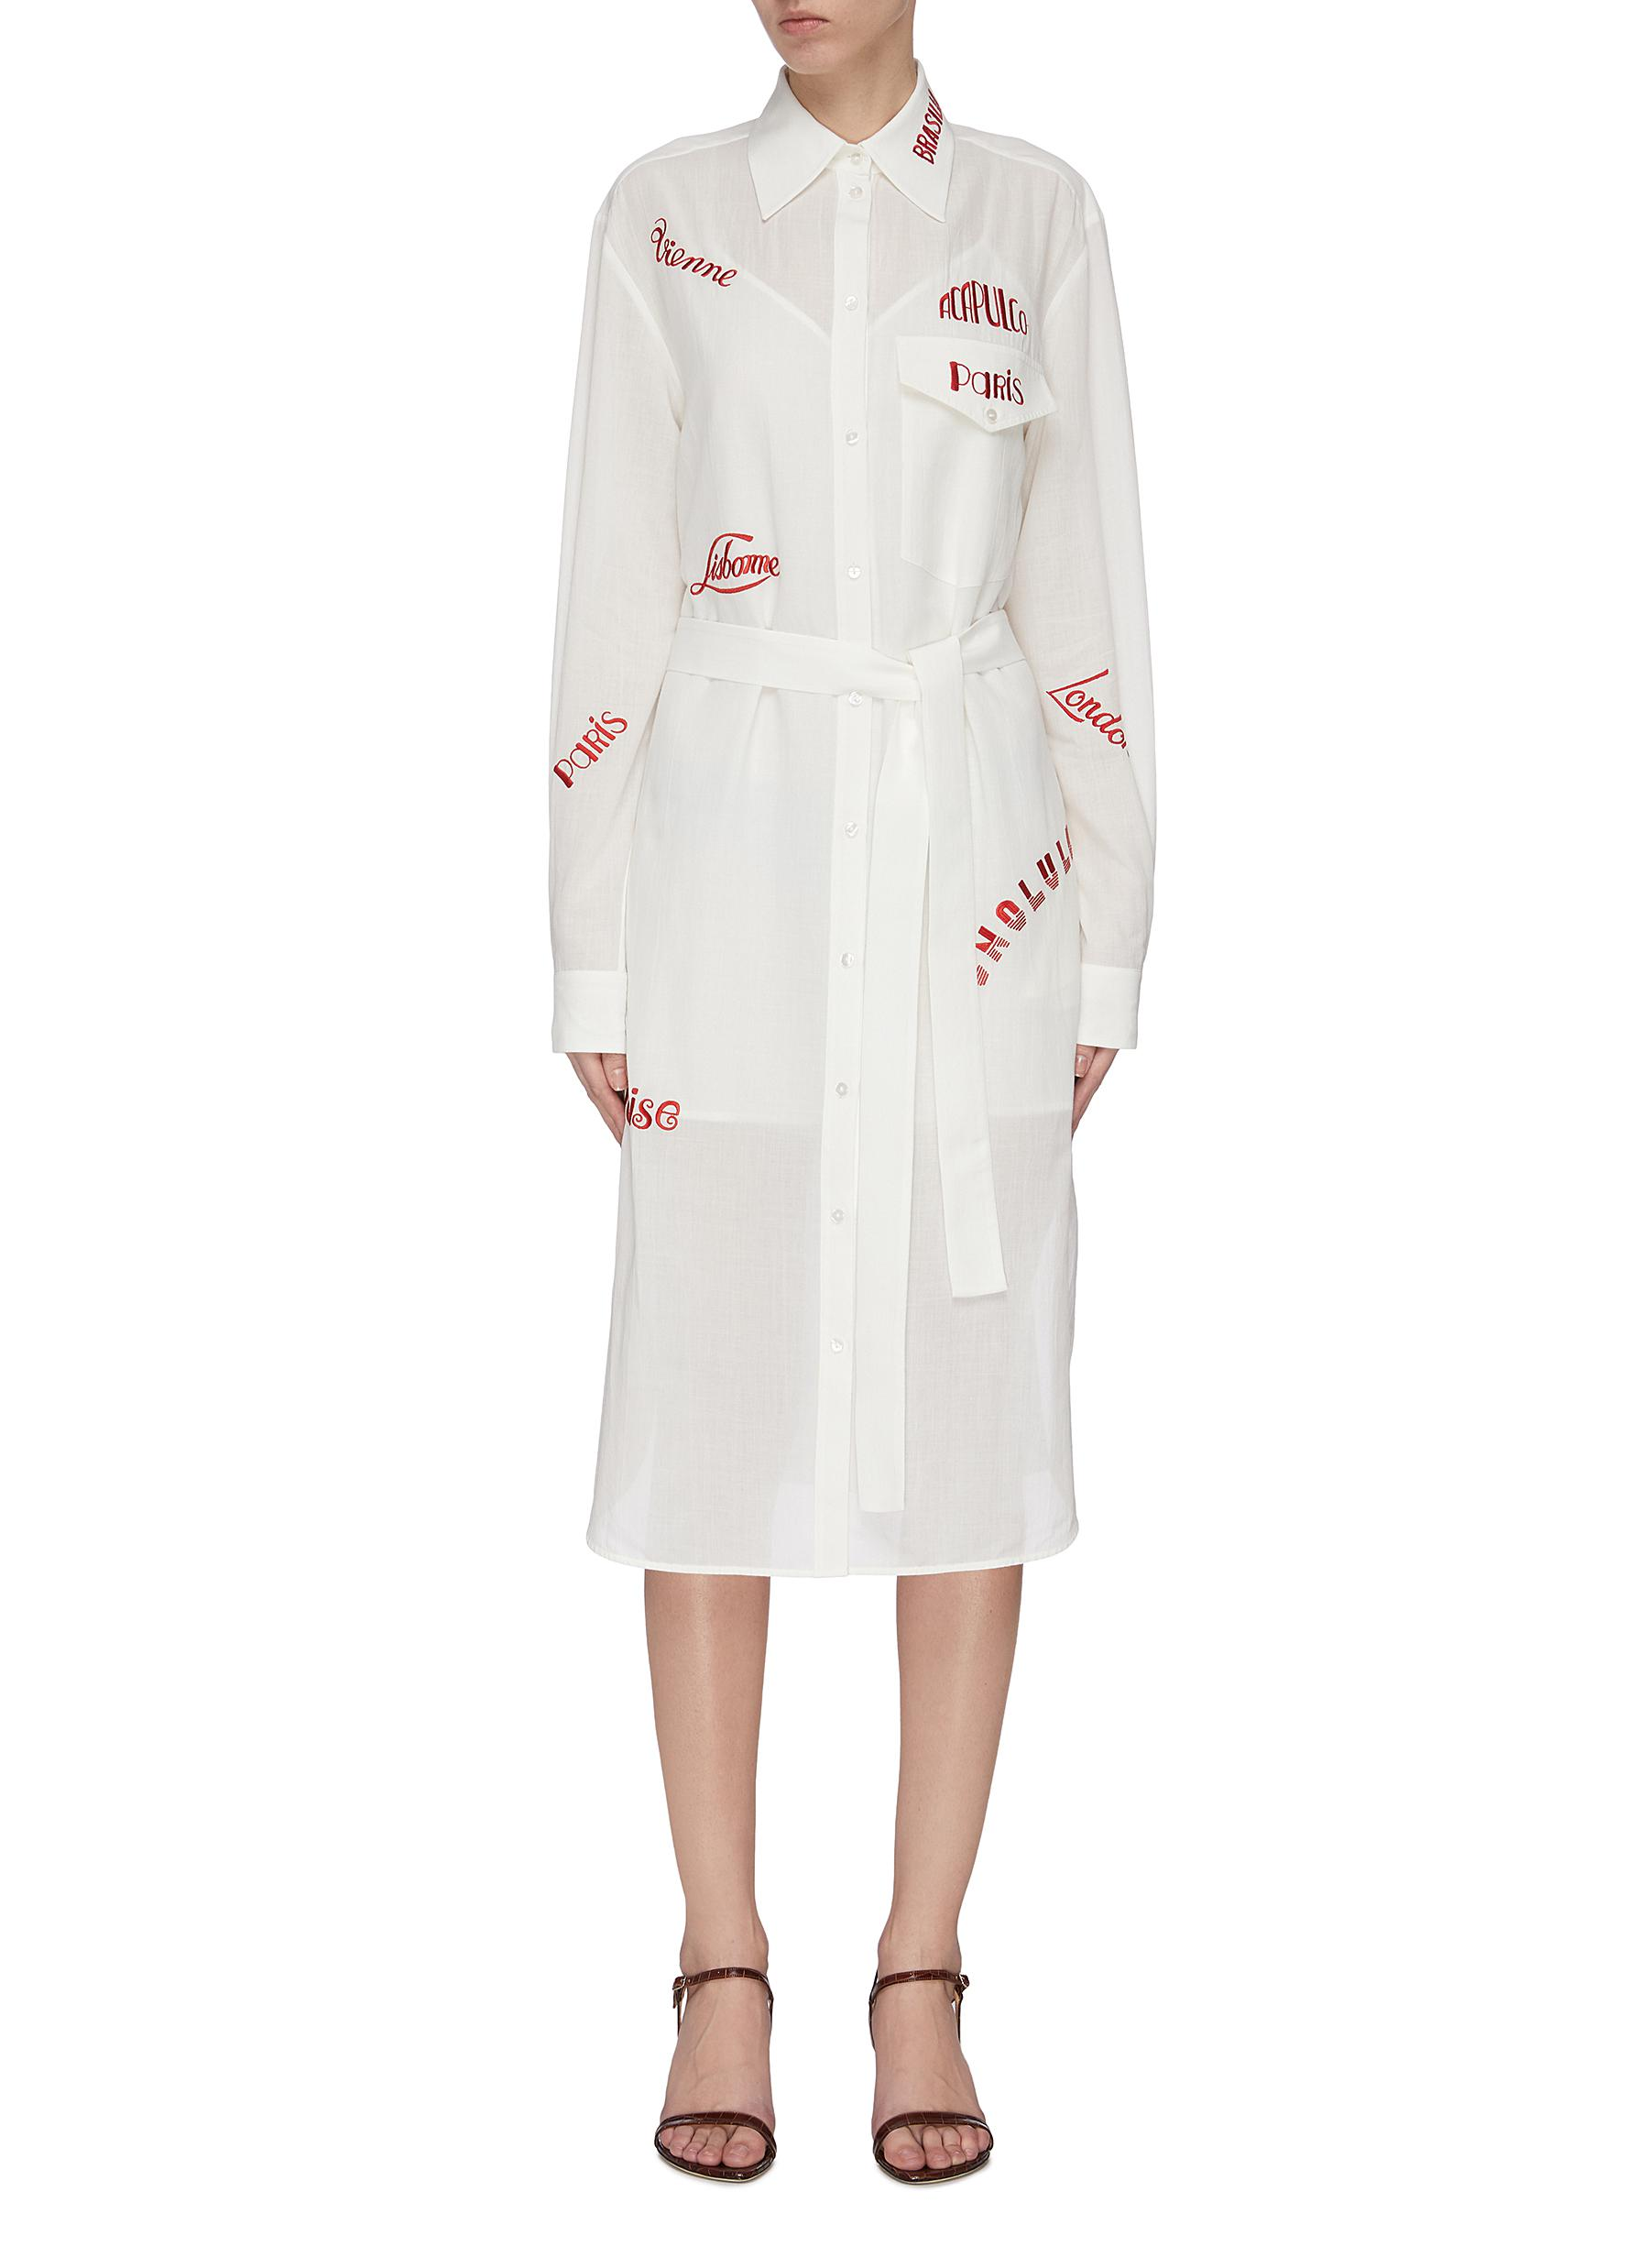 Buy Victoria, Victoria Beckham Dresses City text embroidered belted shirt dress